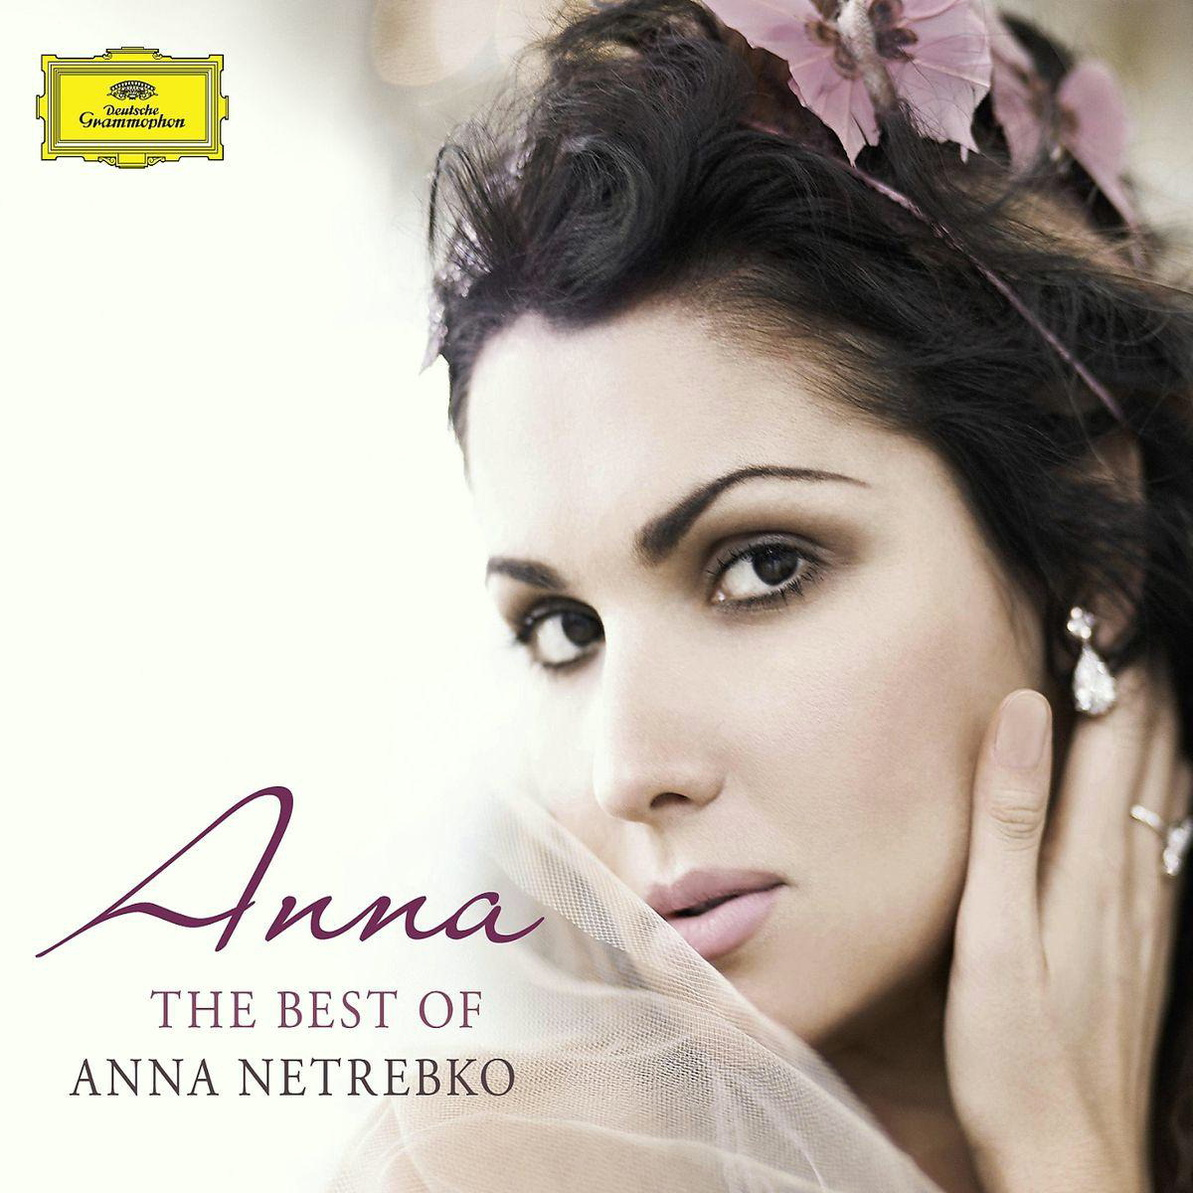 Anna Netrebko - Anna - The Best of Anna Netrebko